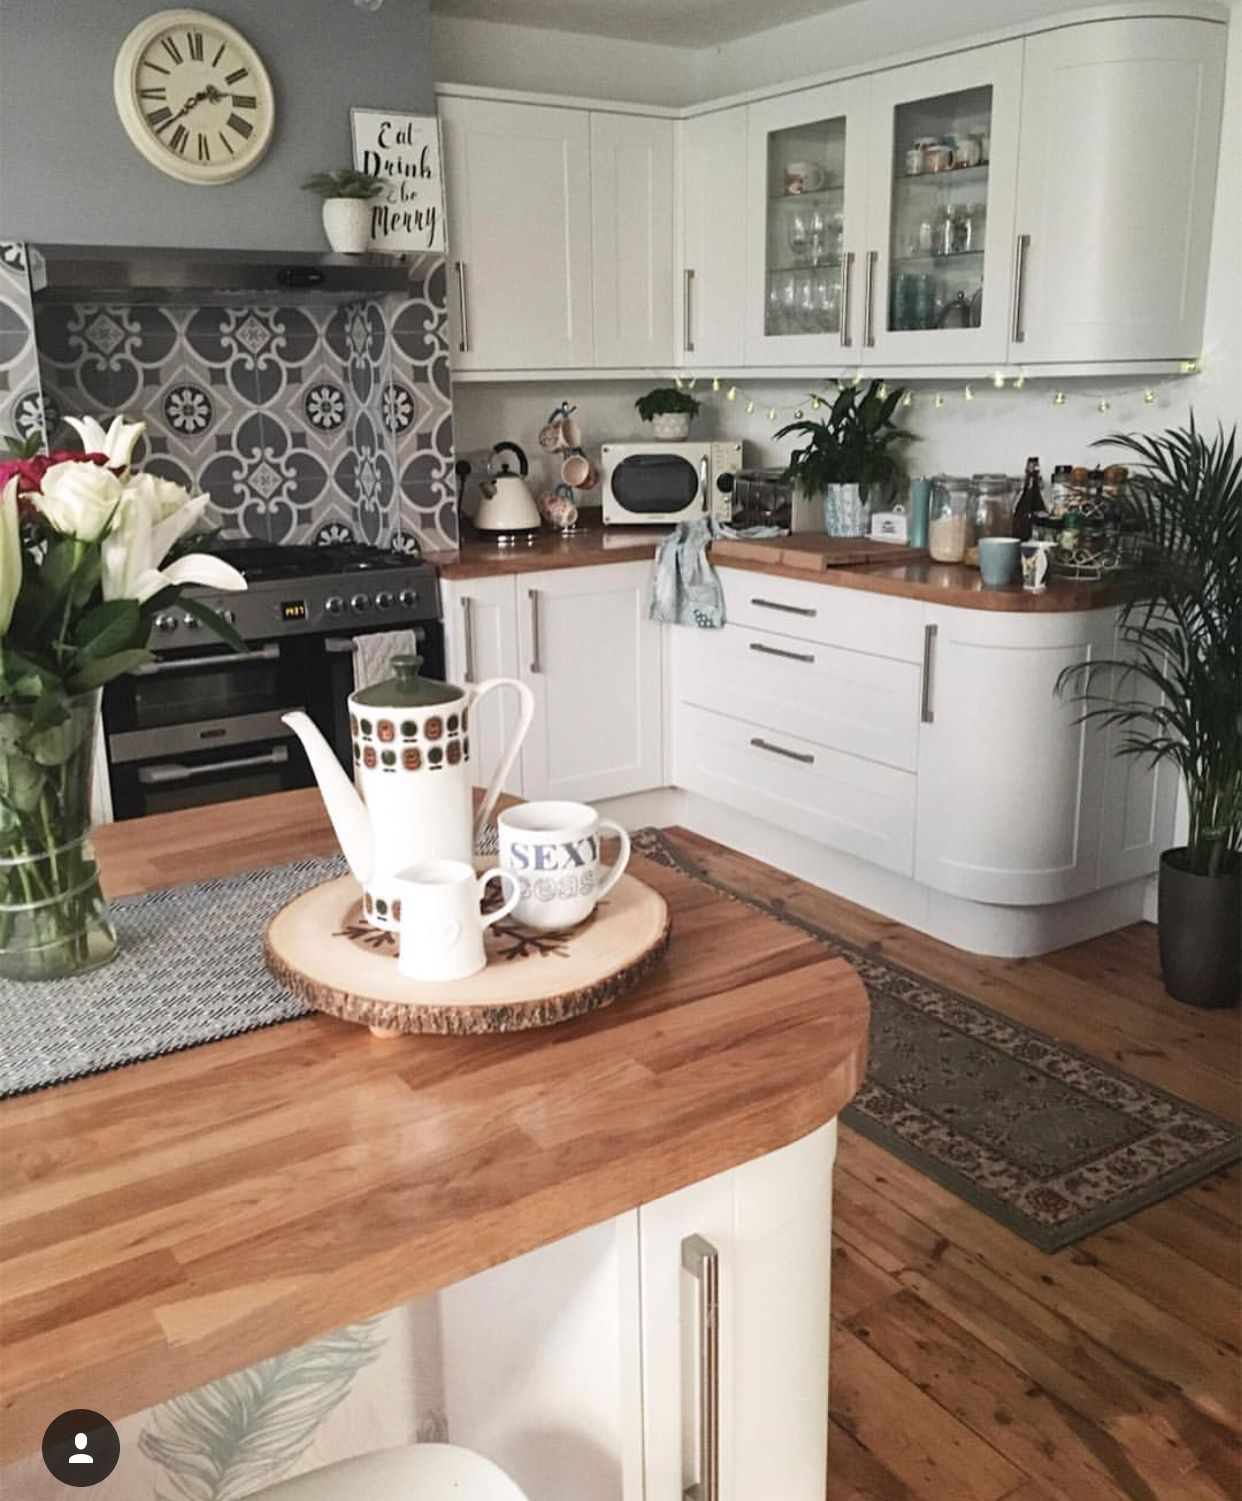 I don't like the big pattern behind stove but I do like the way the cabinets are rounded on the corner! #homeextensions